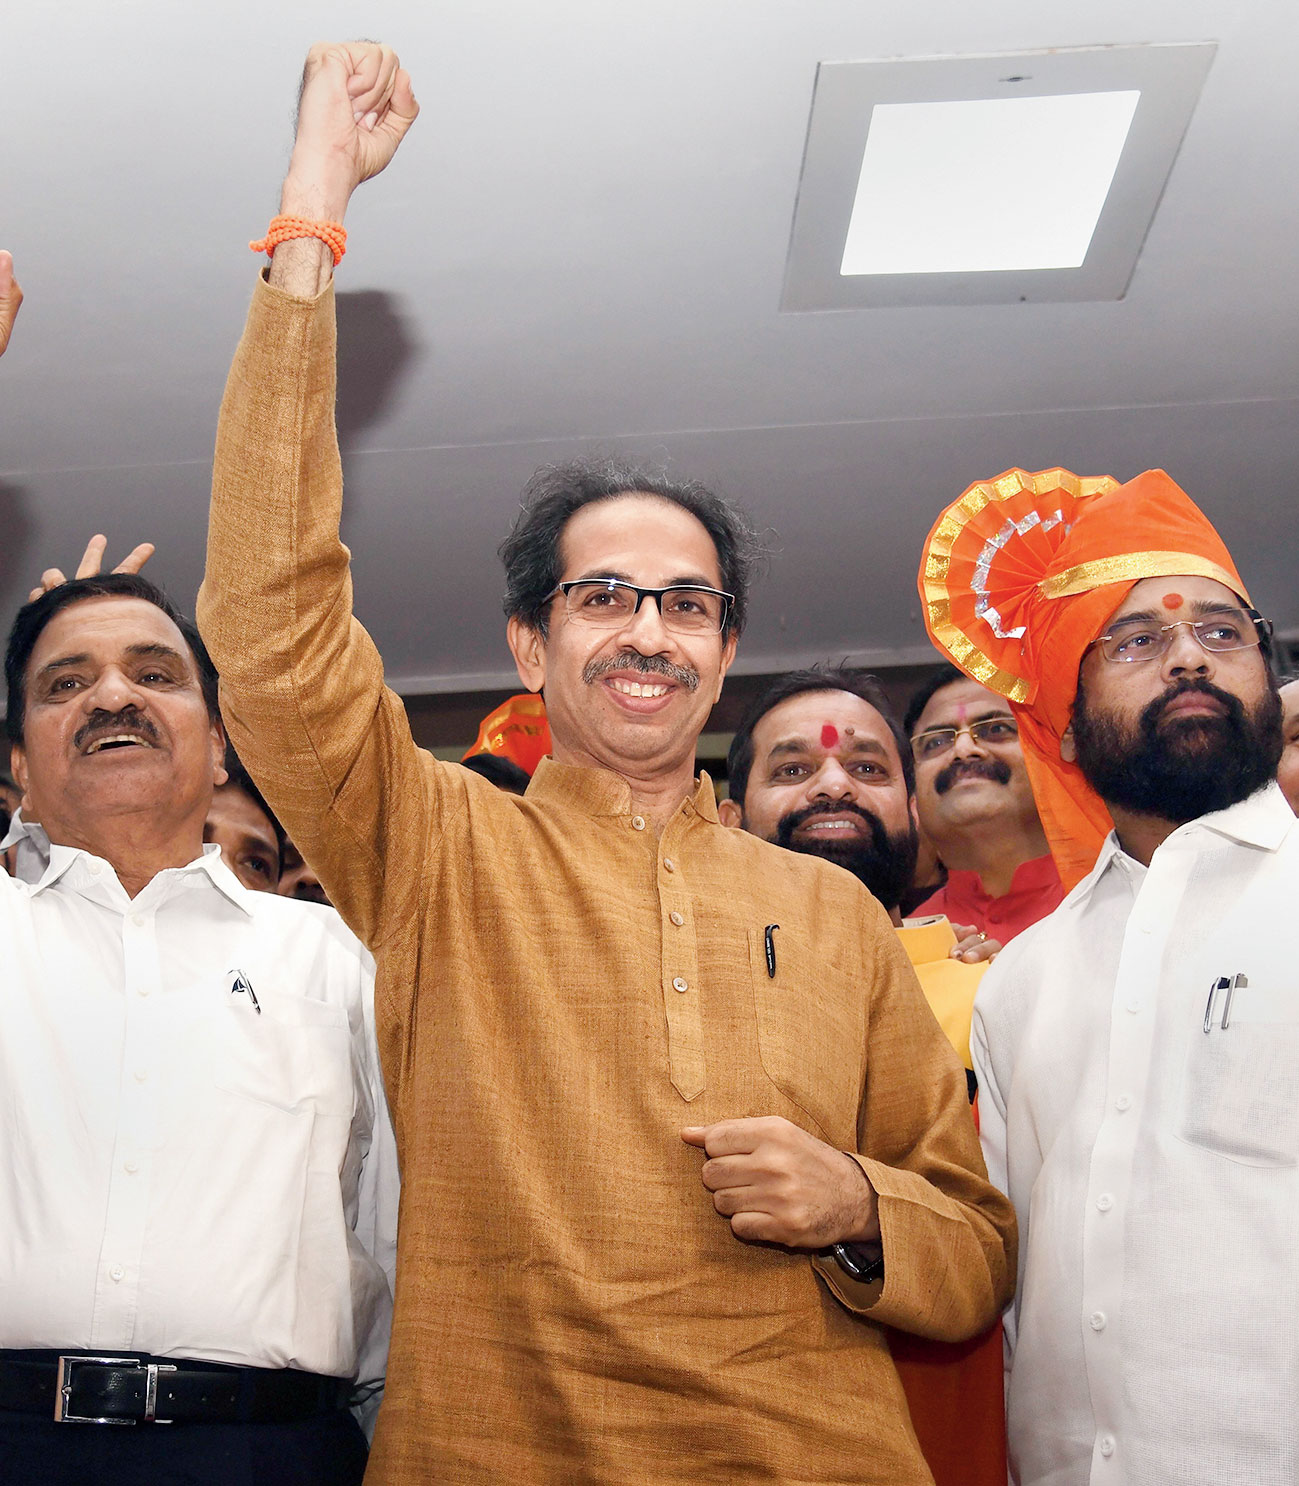 Uddhav Thackeray after the Shiv Sena-NCP-Congress alliance won the floor test in the Maharashtra Assembly on Saturday.